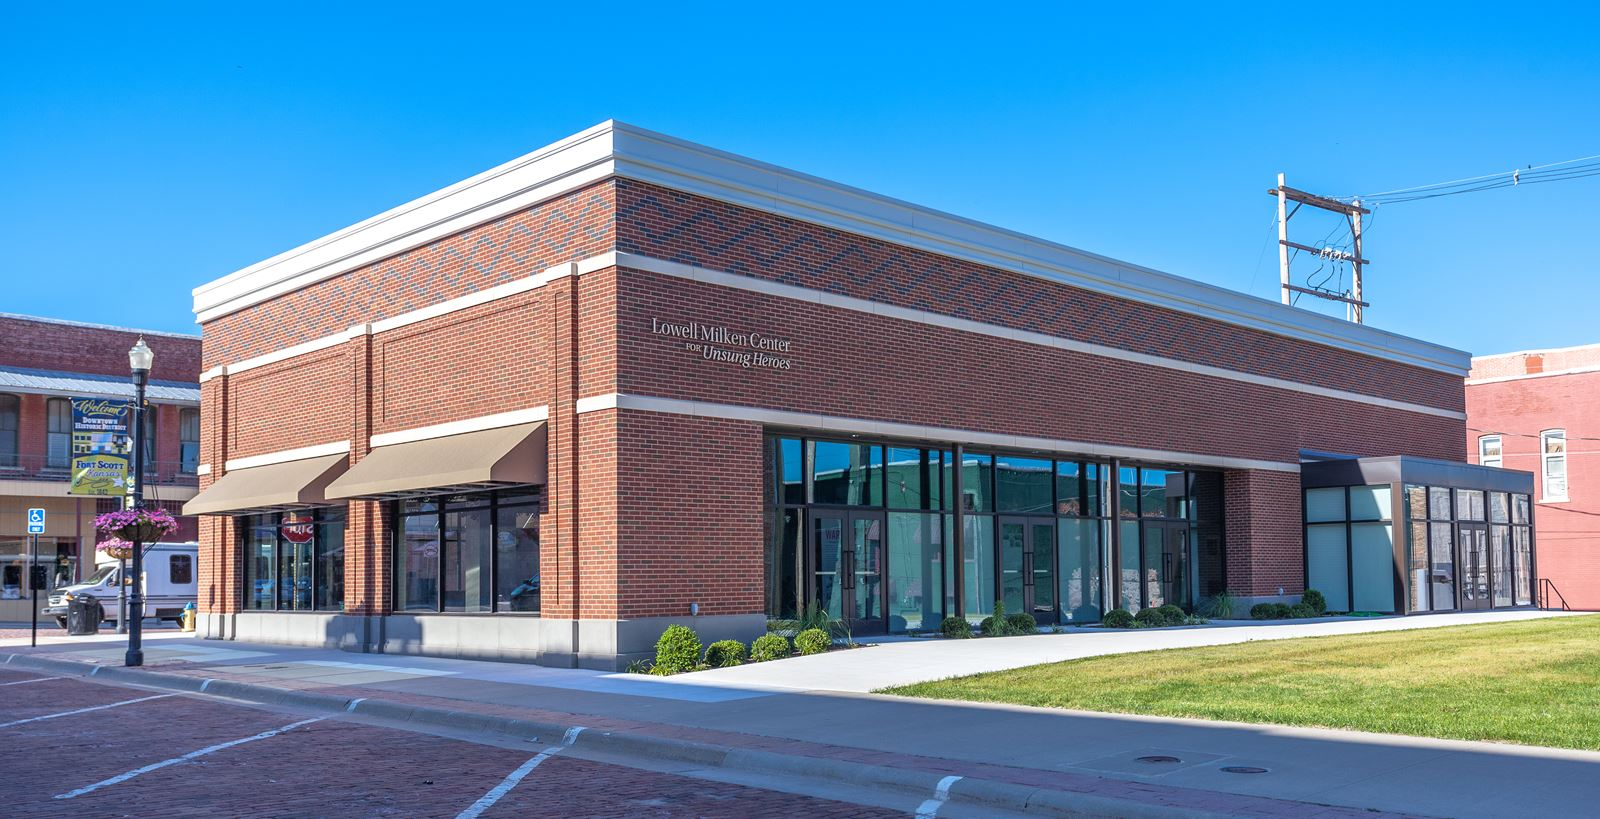 Strata architecture preservation kansas city architects for Architecture firms kc